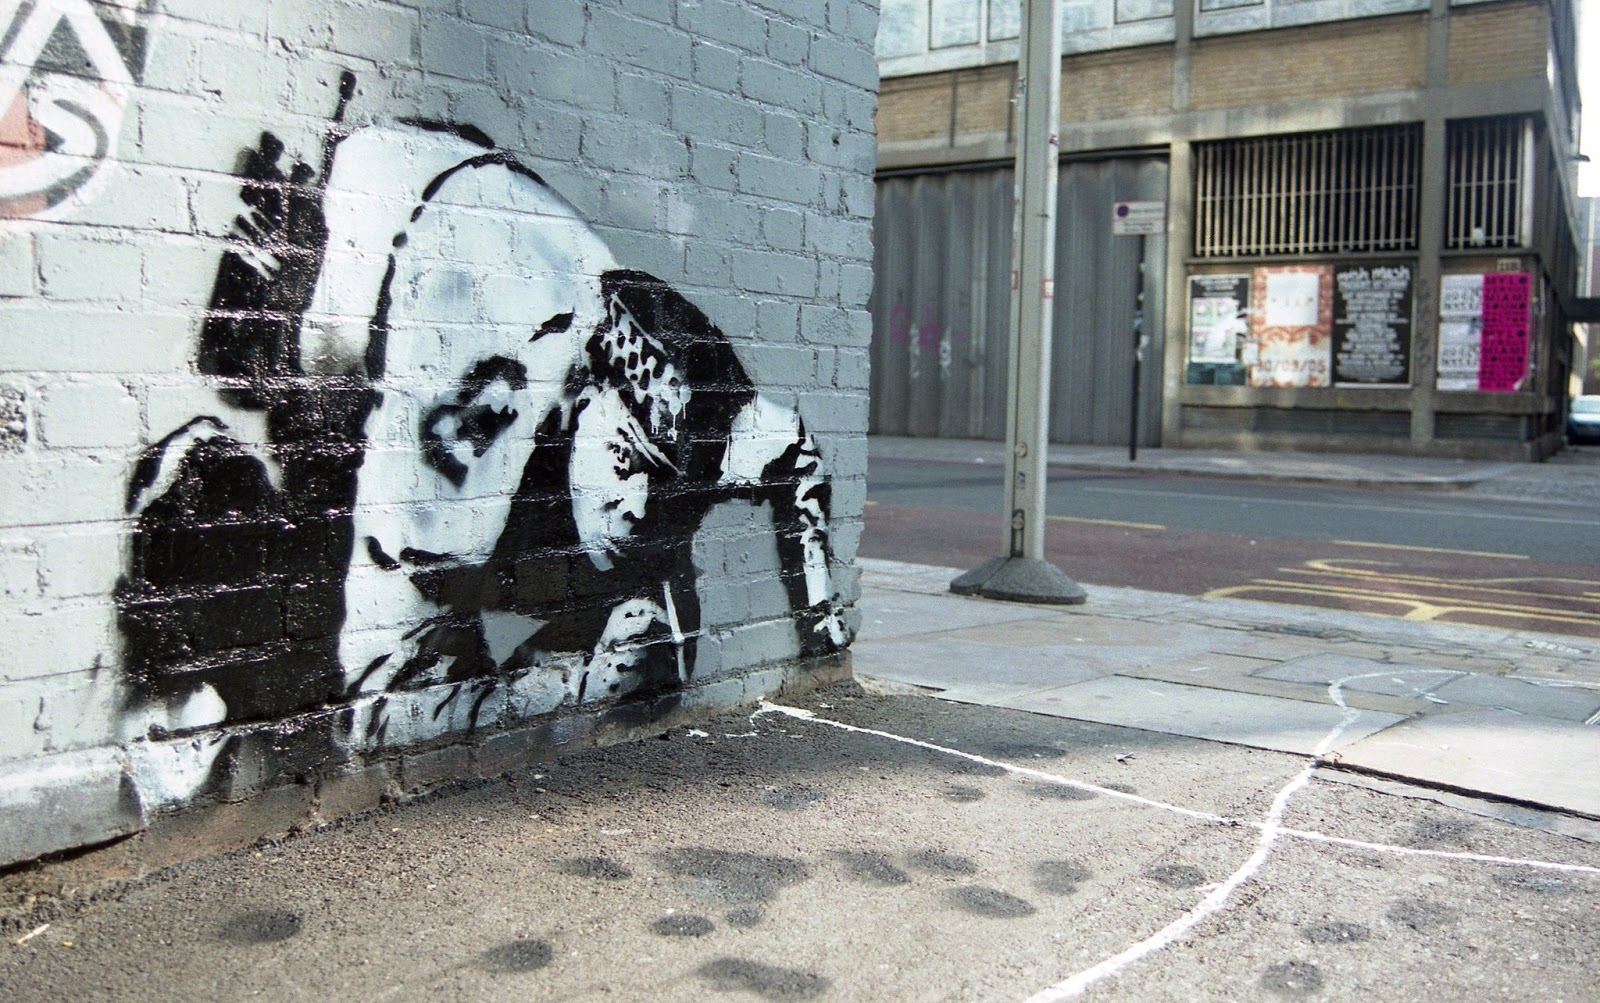 """Snorting Copper"" by Banksy, 2005. Photo by Steve Cotton, Artofthestate.co.uk"